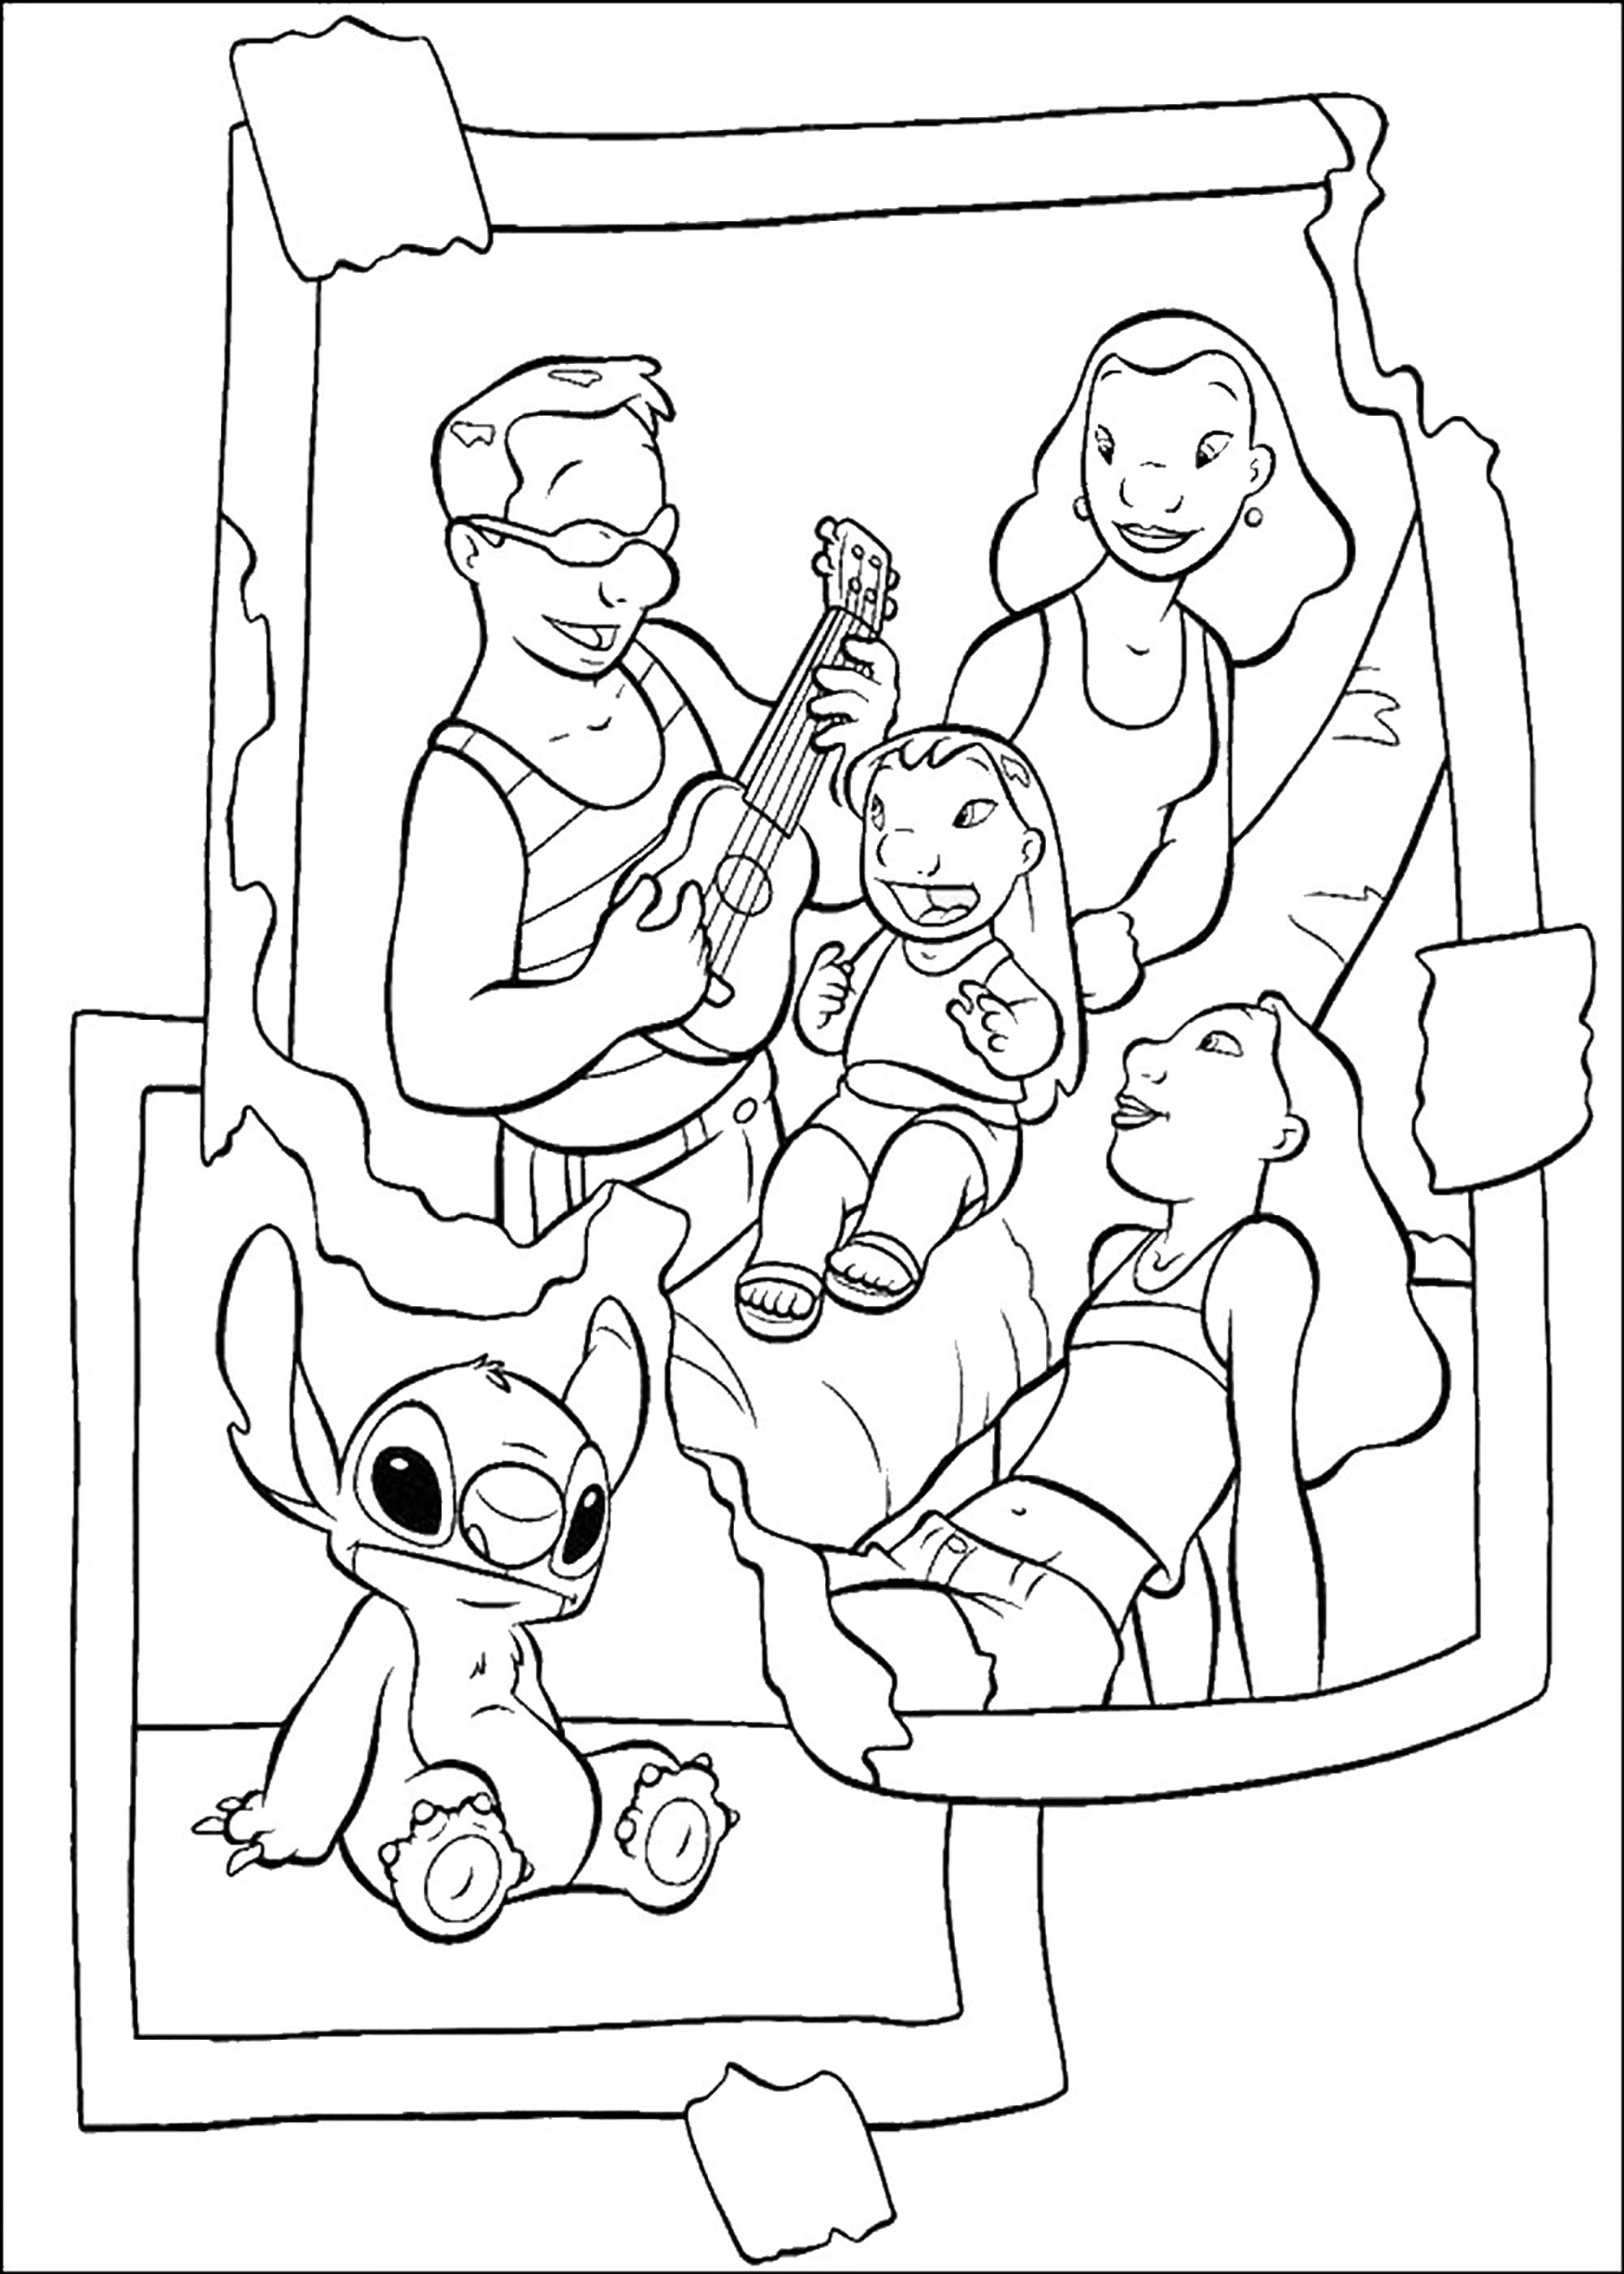 Funny Lilo And Stich coloring page for children